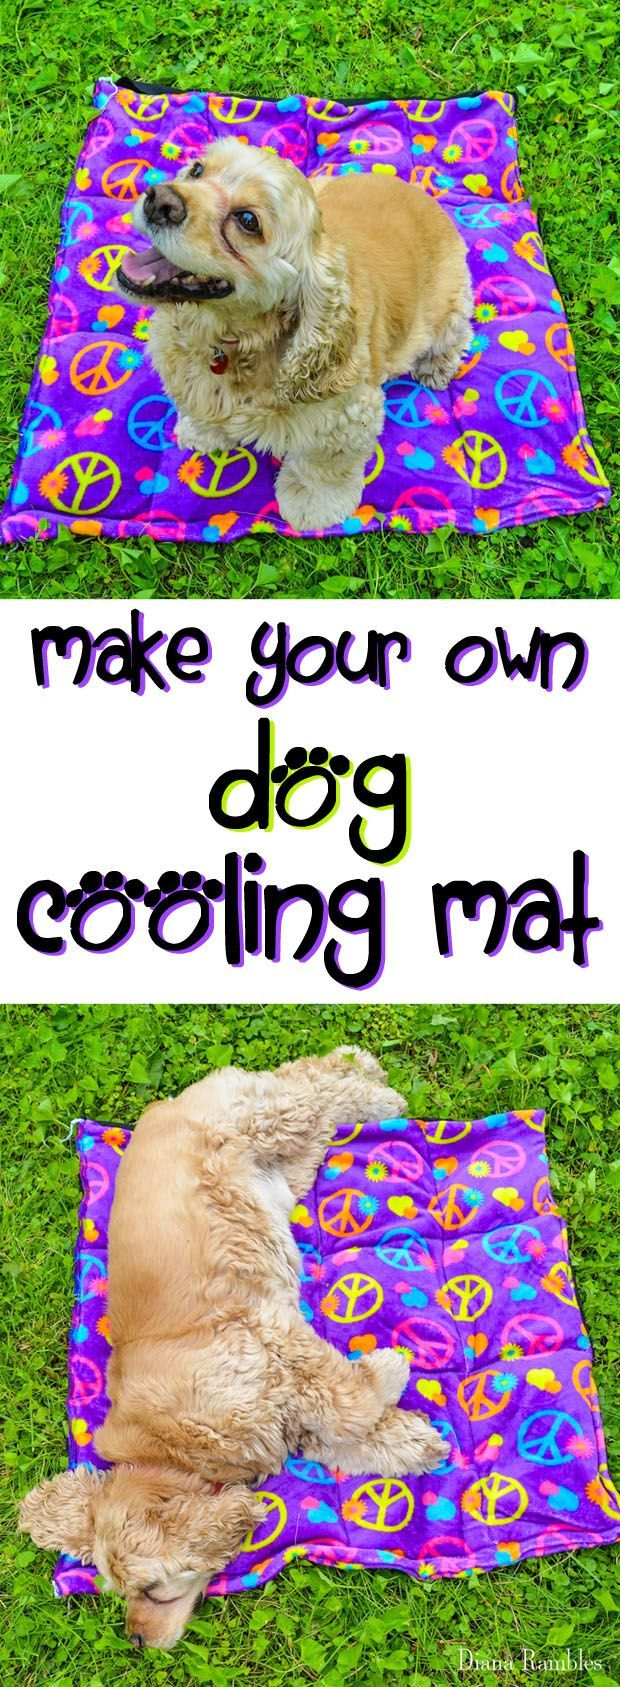 DIY Dog Cooling Pad Sewing Tutorial - Need to keep your dog cooled off in hot weather? Here is a DIY Dog Cooling Mat Tutorial that will keep your pooch cool while he's outside with the family. It's great pet bed for warm weather climates. It's easy to mak